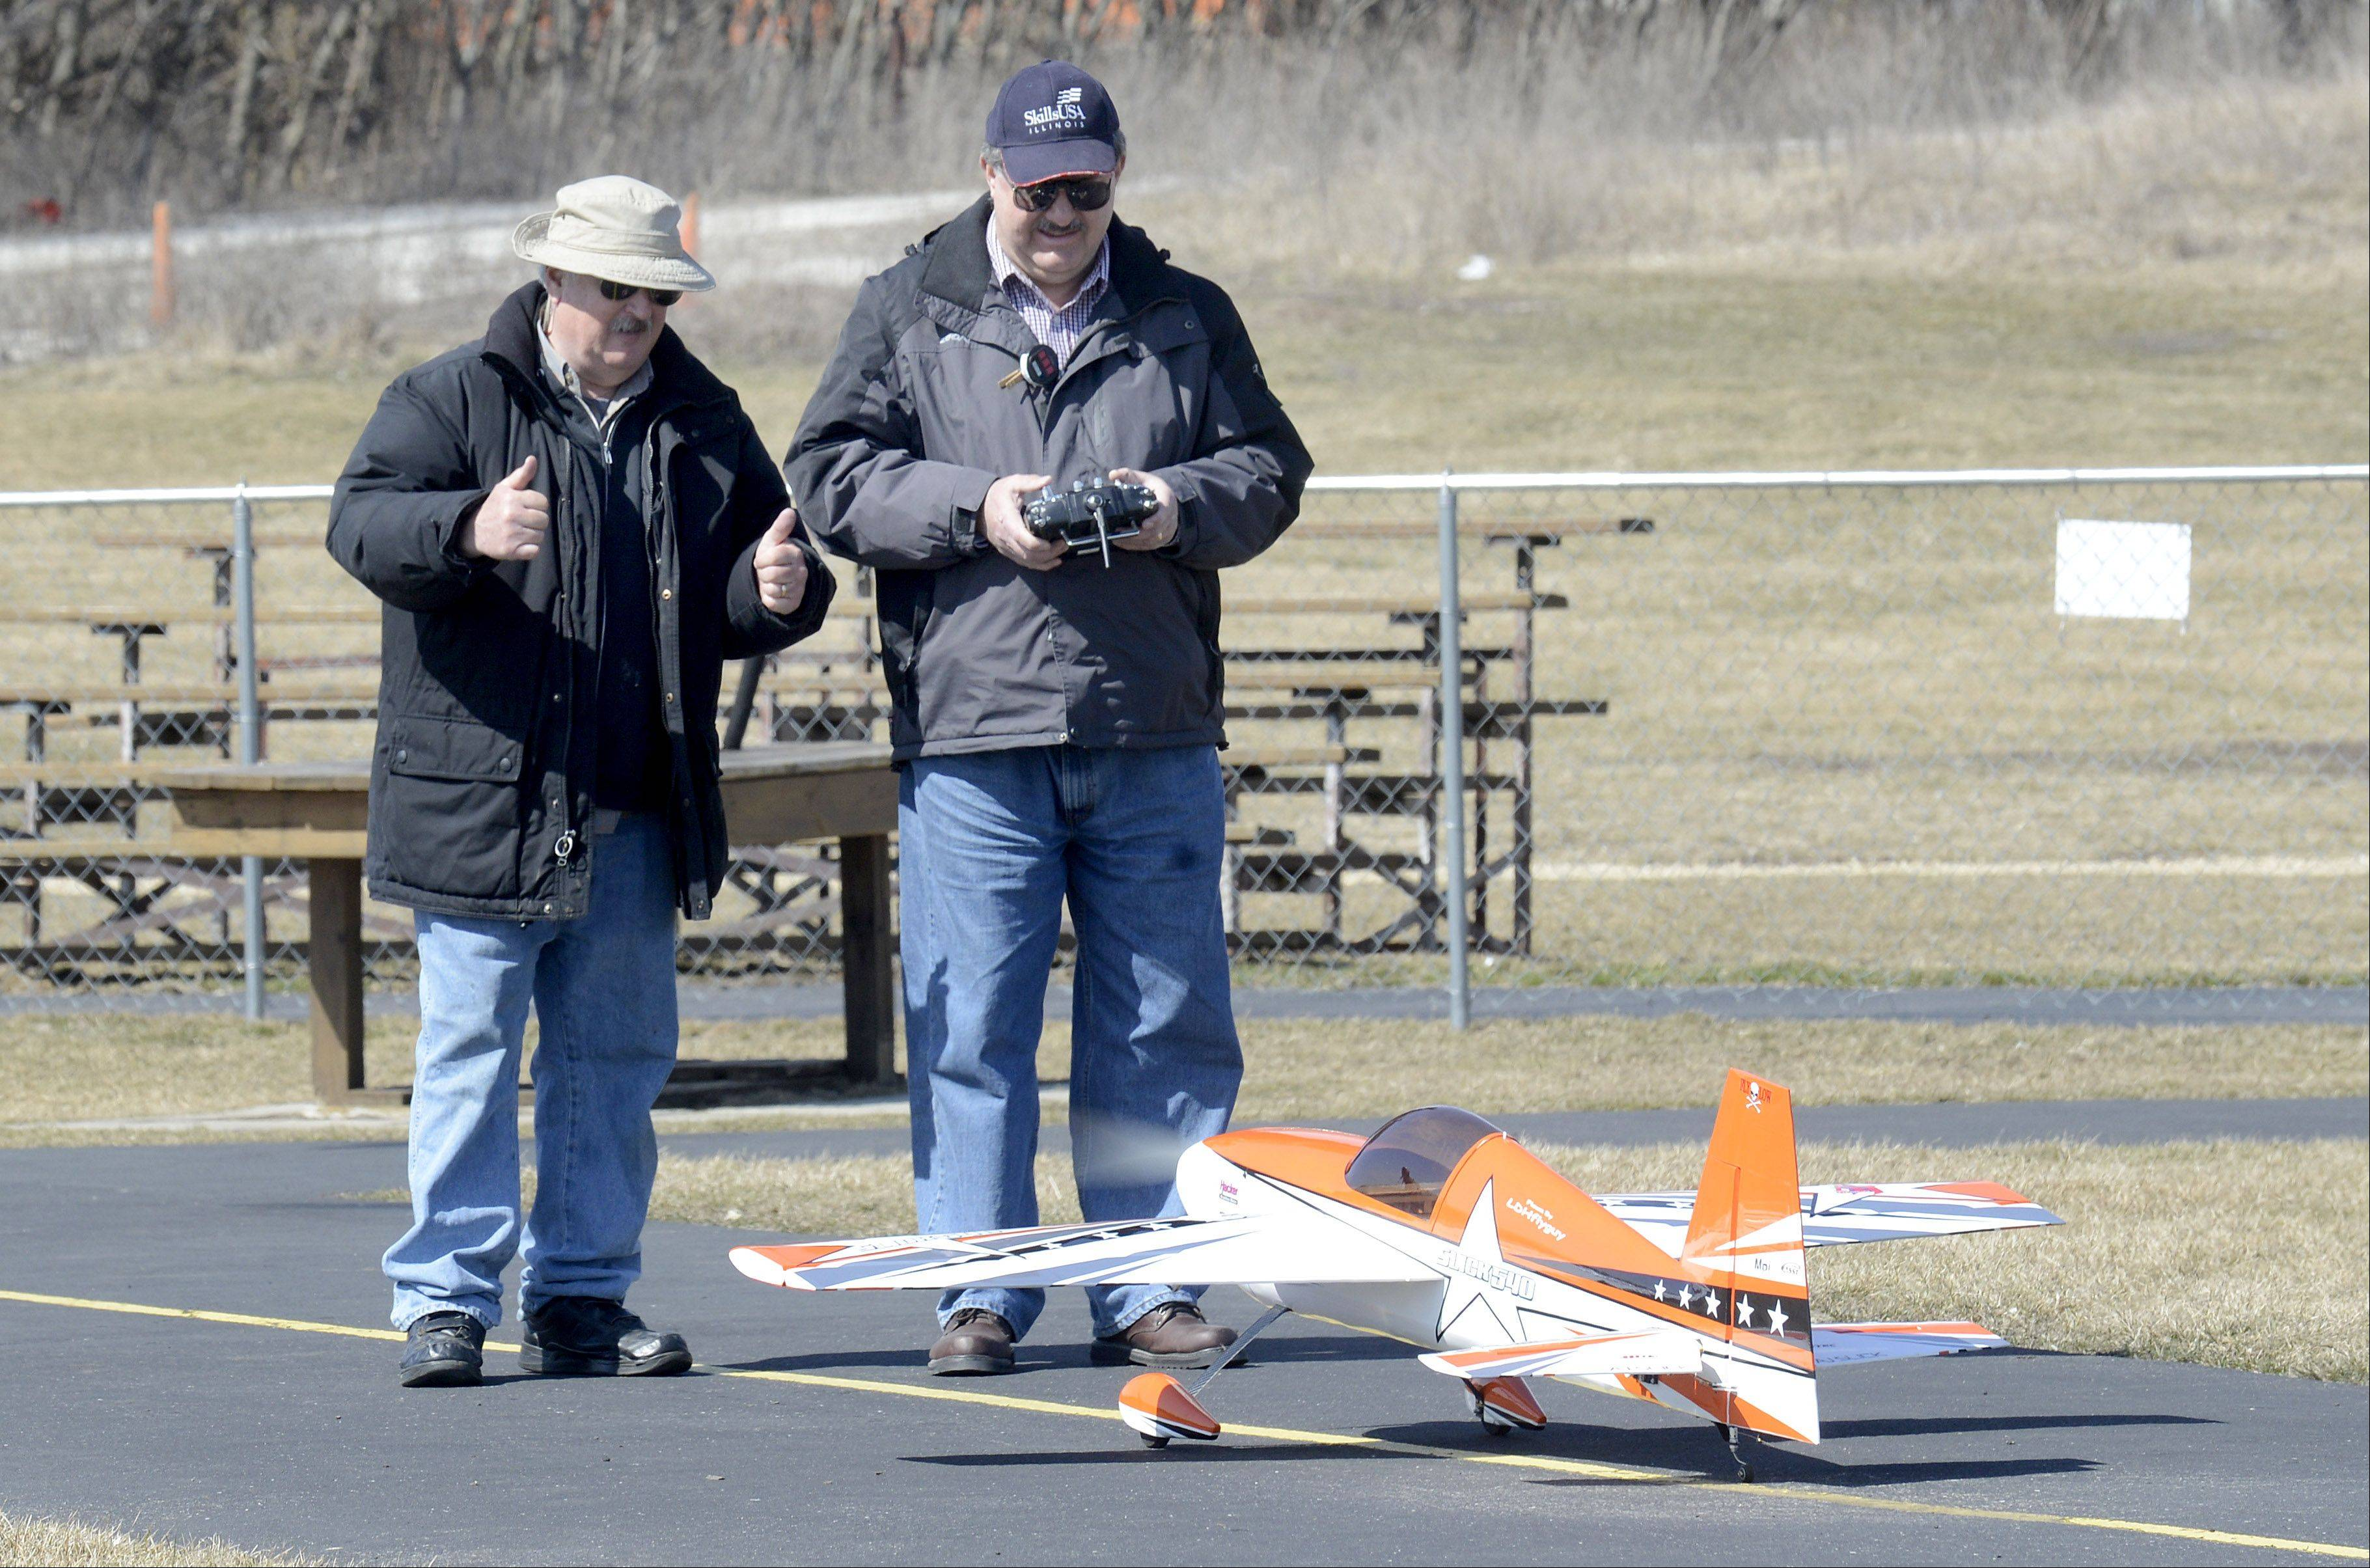 Tom Flint, of Geneva, gives Larry Huck, of Batavia, a thumbs up for his landing and taxiing while flying at the Fox Valley Aero Club's airstrip in St. Charles Wednesday. The aerobatic plane has a 72 inch wingspan. Flint was flying his planes since mid morning and Huck joined him about 2:30. Both men are members of the club and are at the airstrip flying as often as they can.